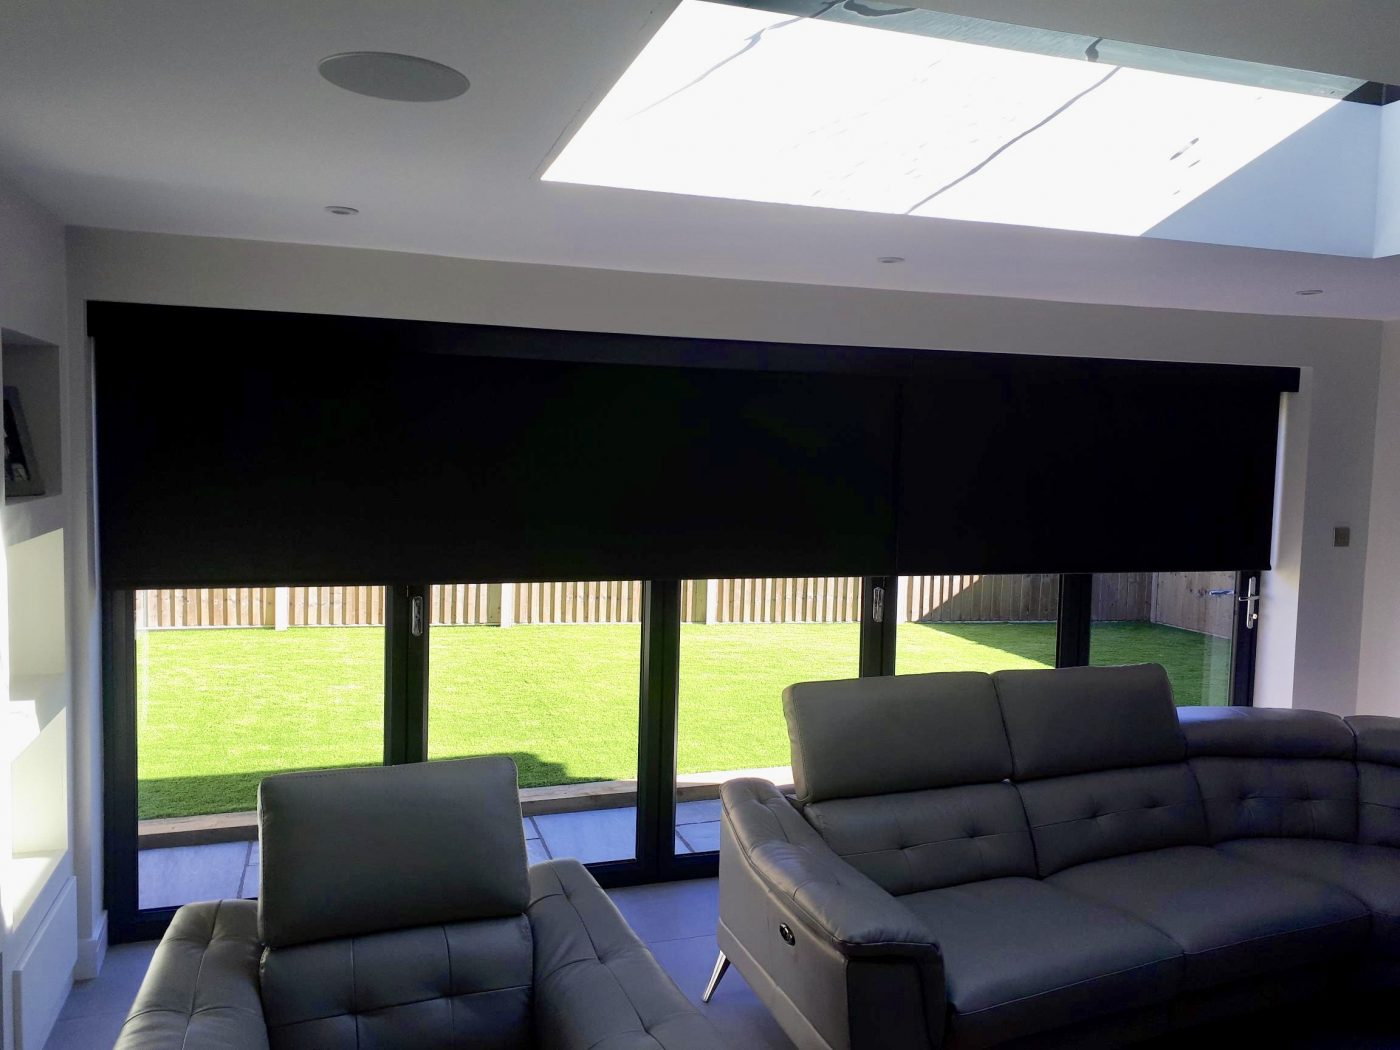 Electric Blinds For 5 Panel BiFold Doors - Fitted in Yately By The Electric Blind Company